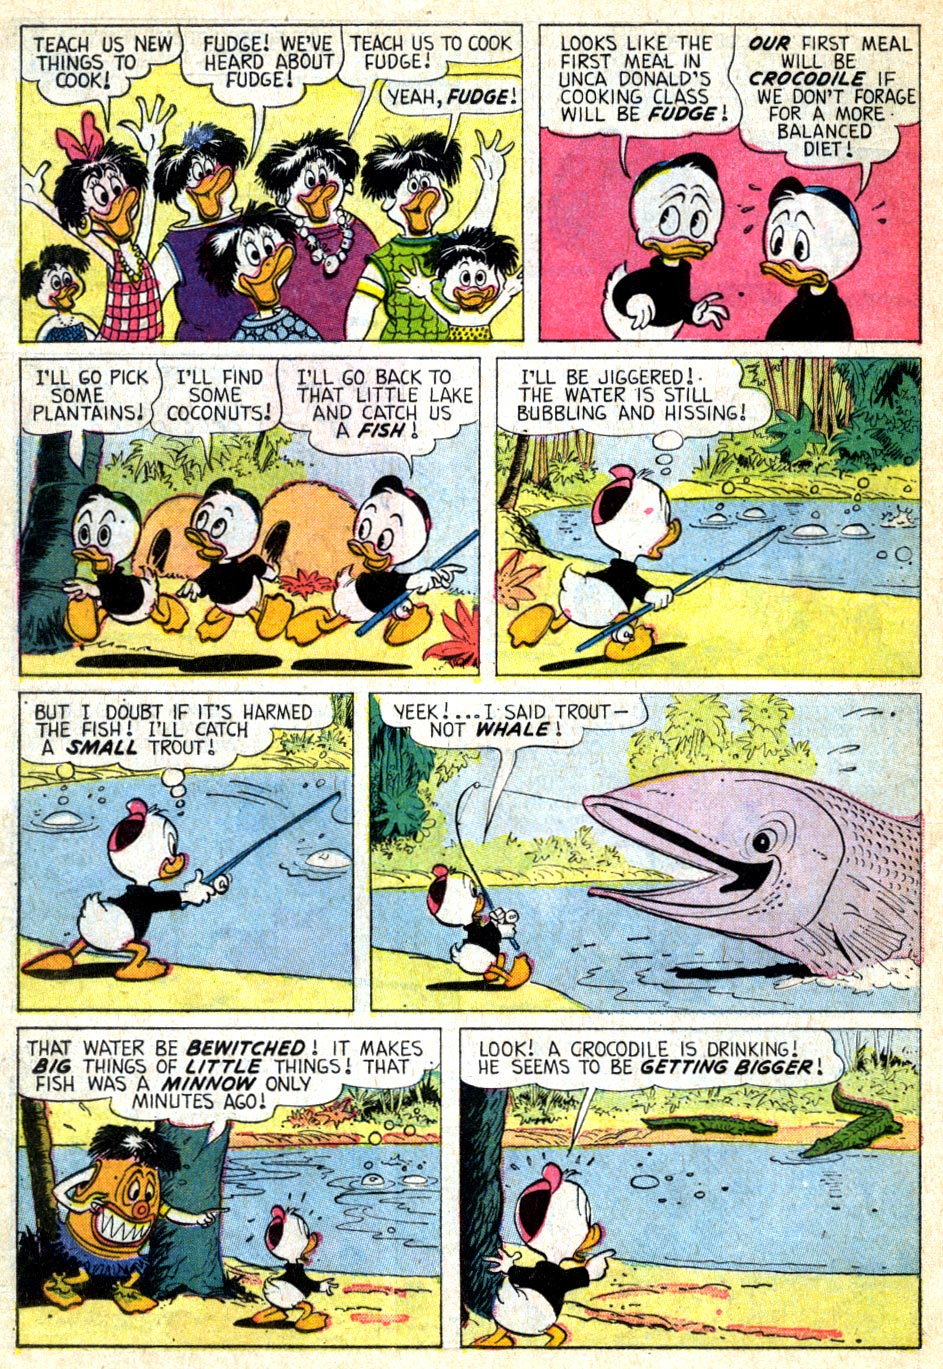 inefree.com/uncle-scroog #366 - English 16